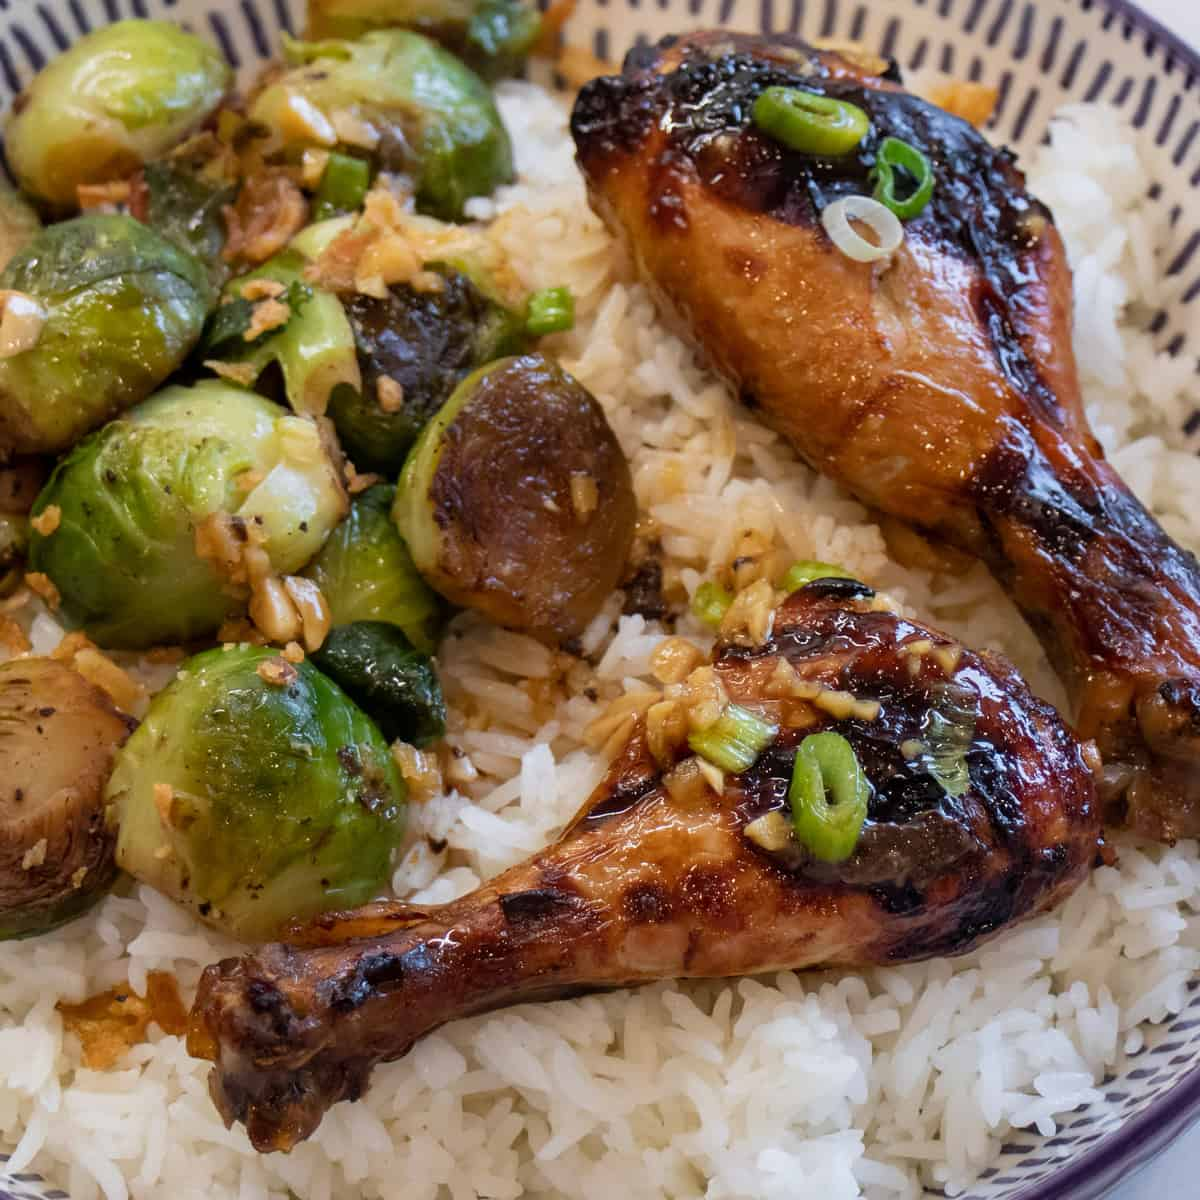 Baked chicken with rice and brussels sprouts